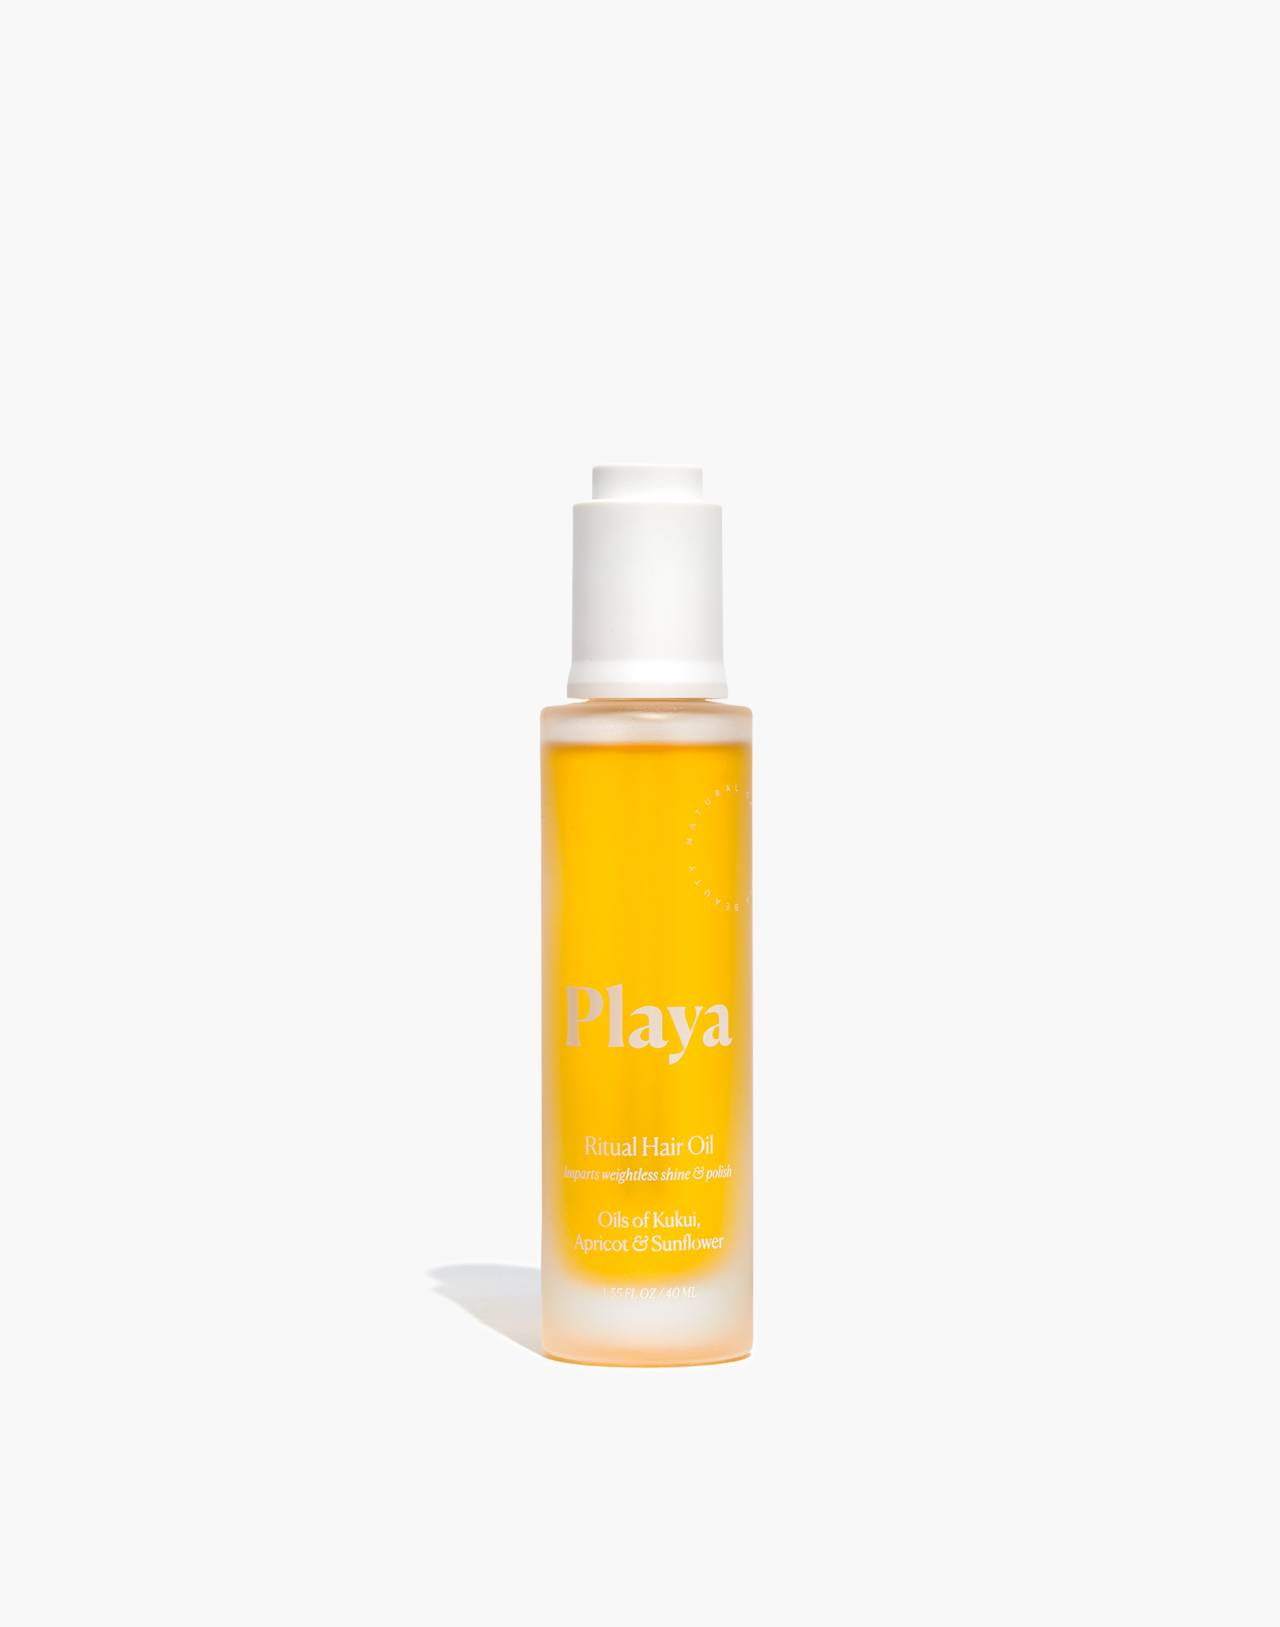 Playa Ritual Hair Oil in apricot and sunflower image 1